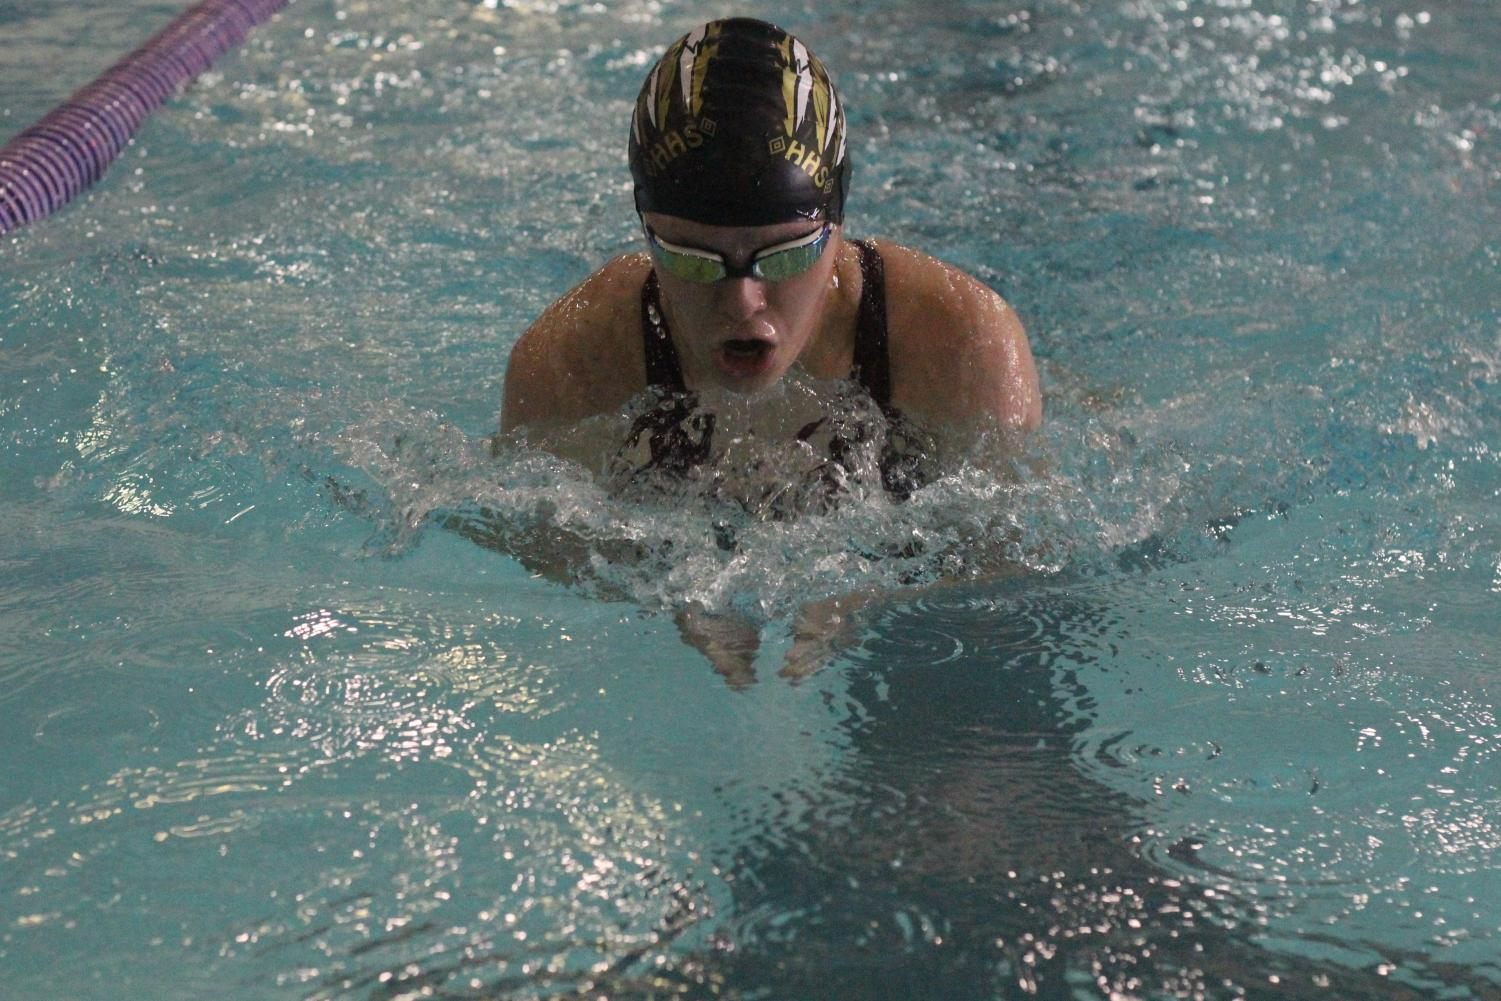 Sophomore Megan Flavin swimming the breastroke during her 200 IM. She placed 4th overall.